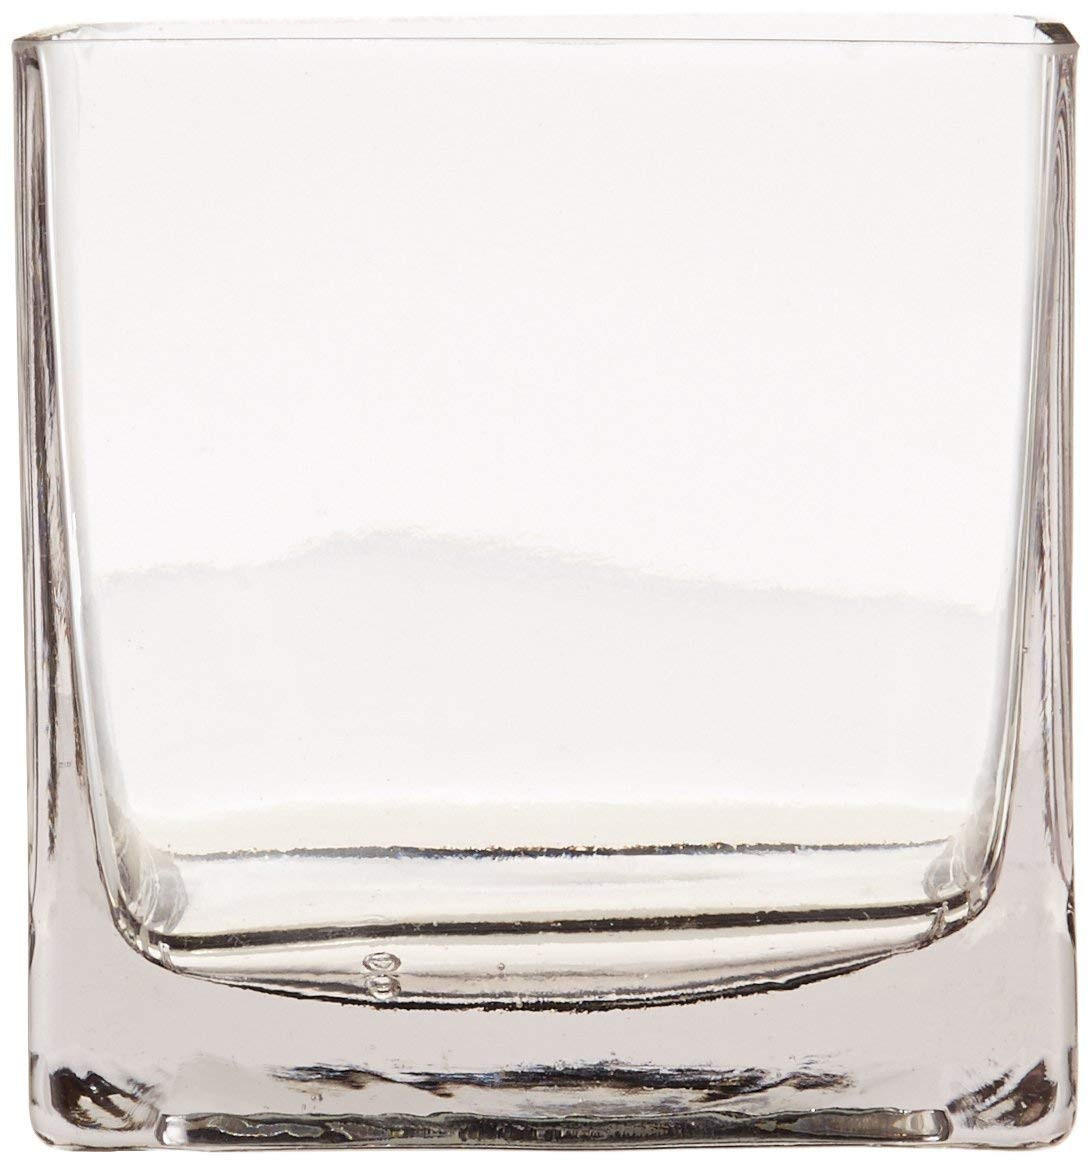 9 cylinder vase bulk of amazon com 12piece 4 square crystal clear glass vase home kitchen inside 61odrrfbtgl sl1164